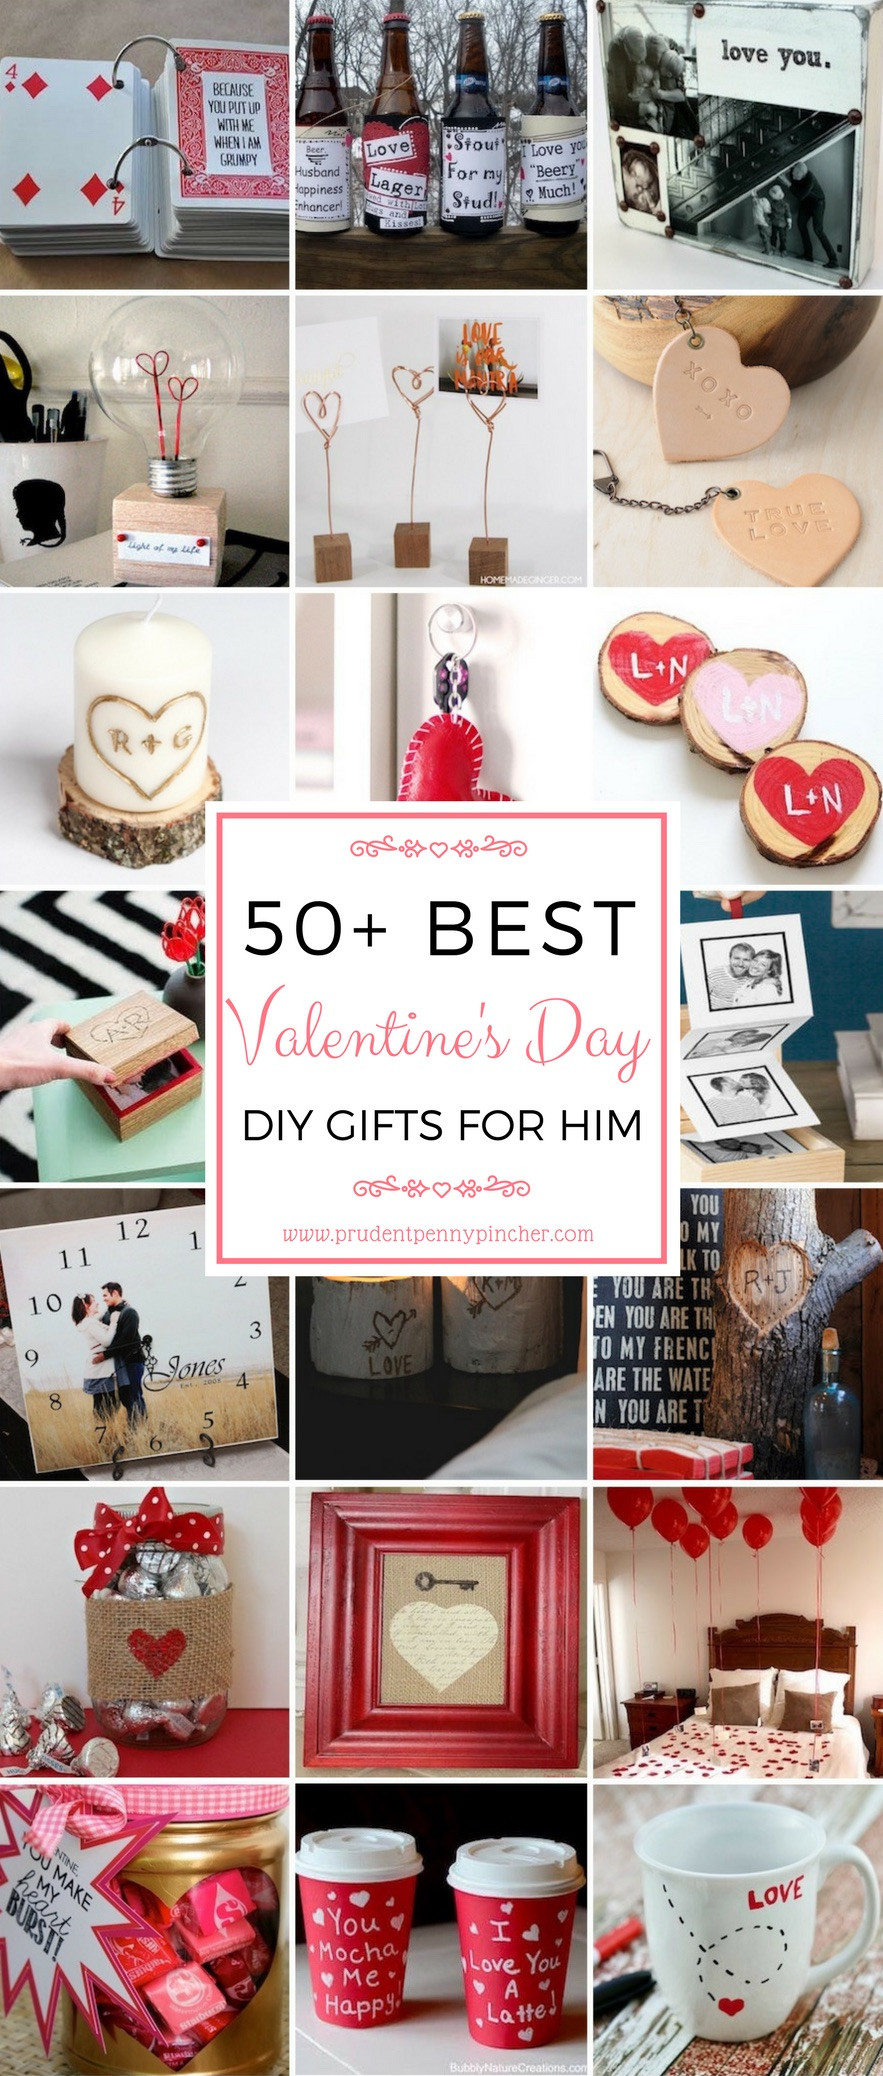 DIY Gifts For Him  50 DIY Valentines Day Gifts for Him Prudent Penny Pincher